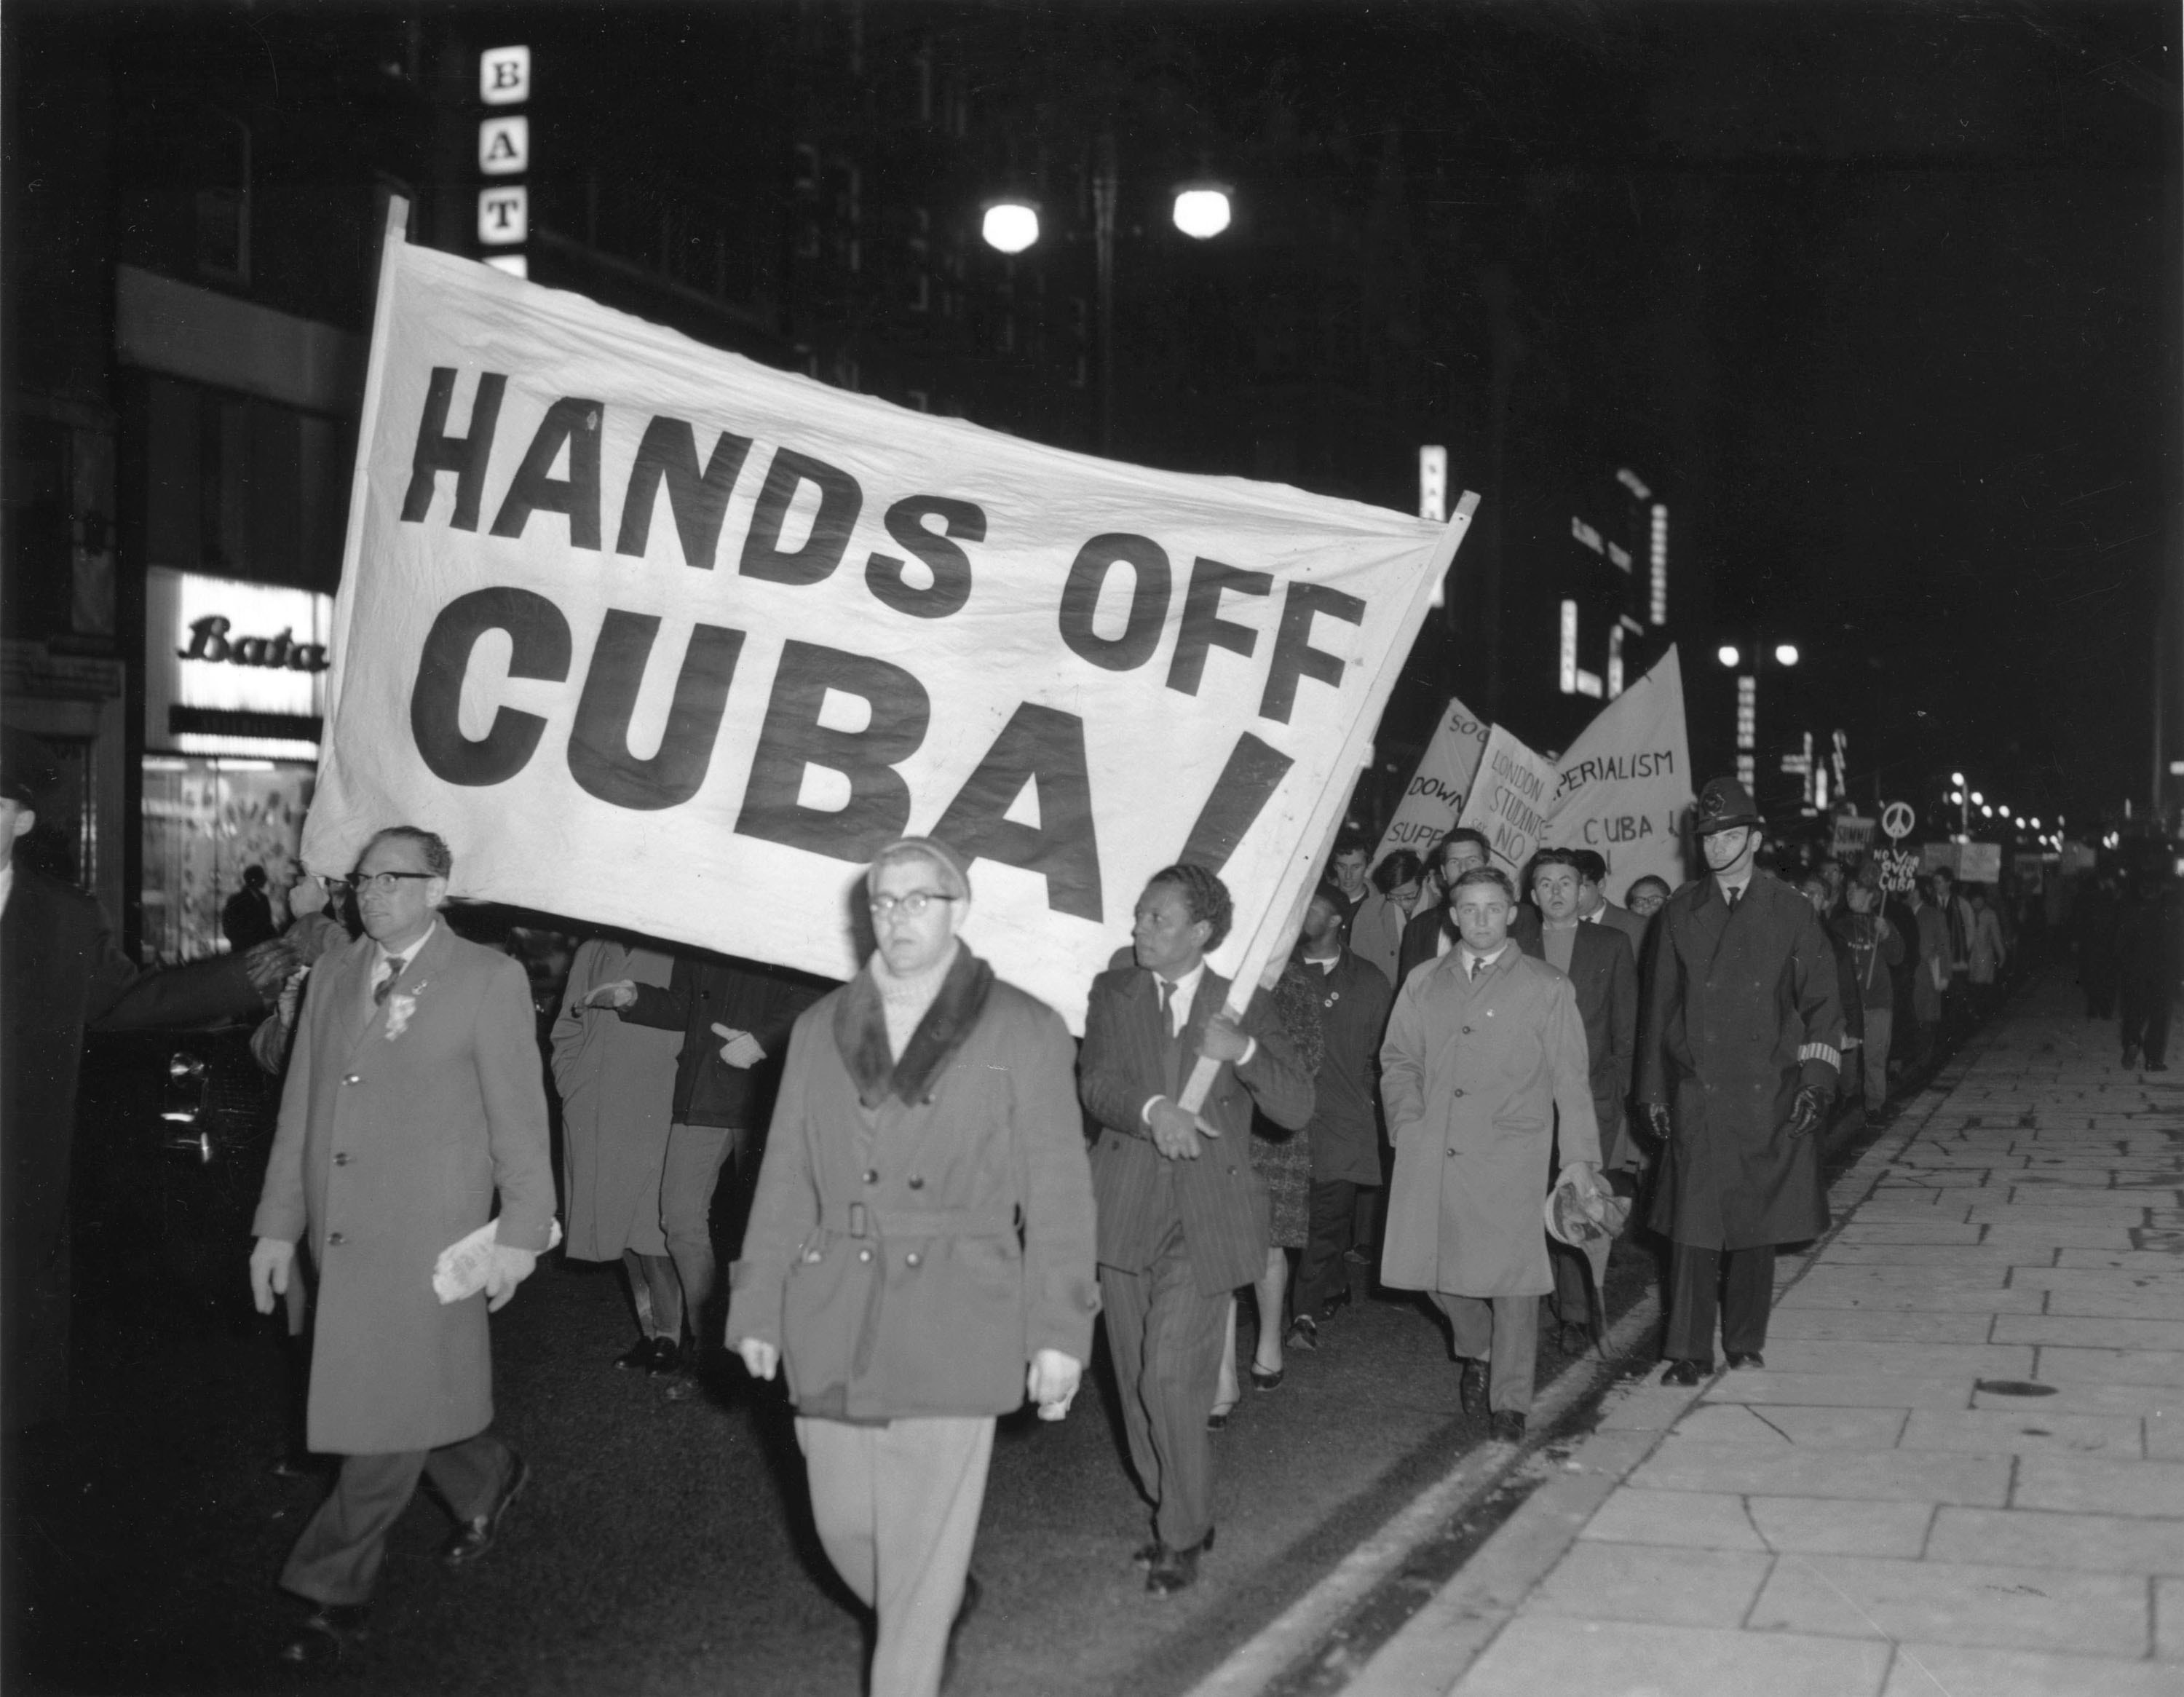 cuban missile crisis Cuban missile crisis questions including what was the cuban missile crisis and why did kennedy blockade cuba.